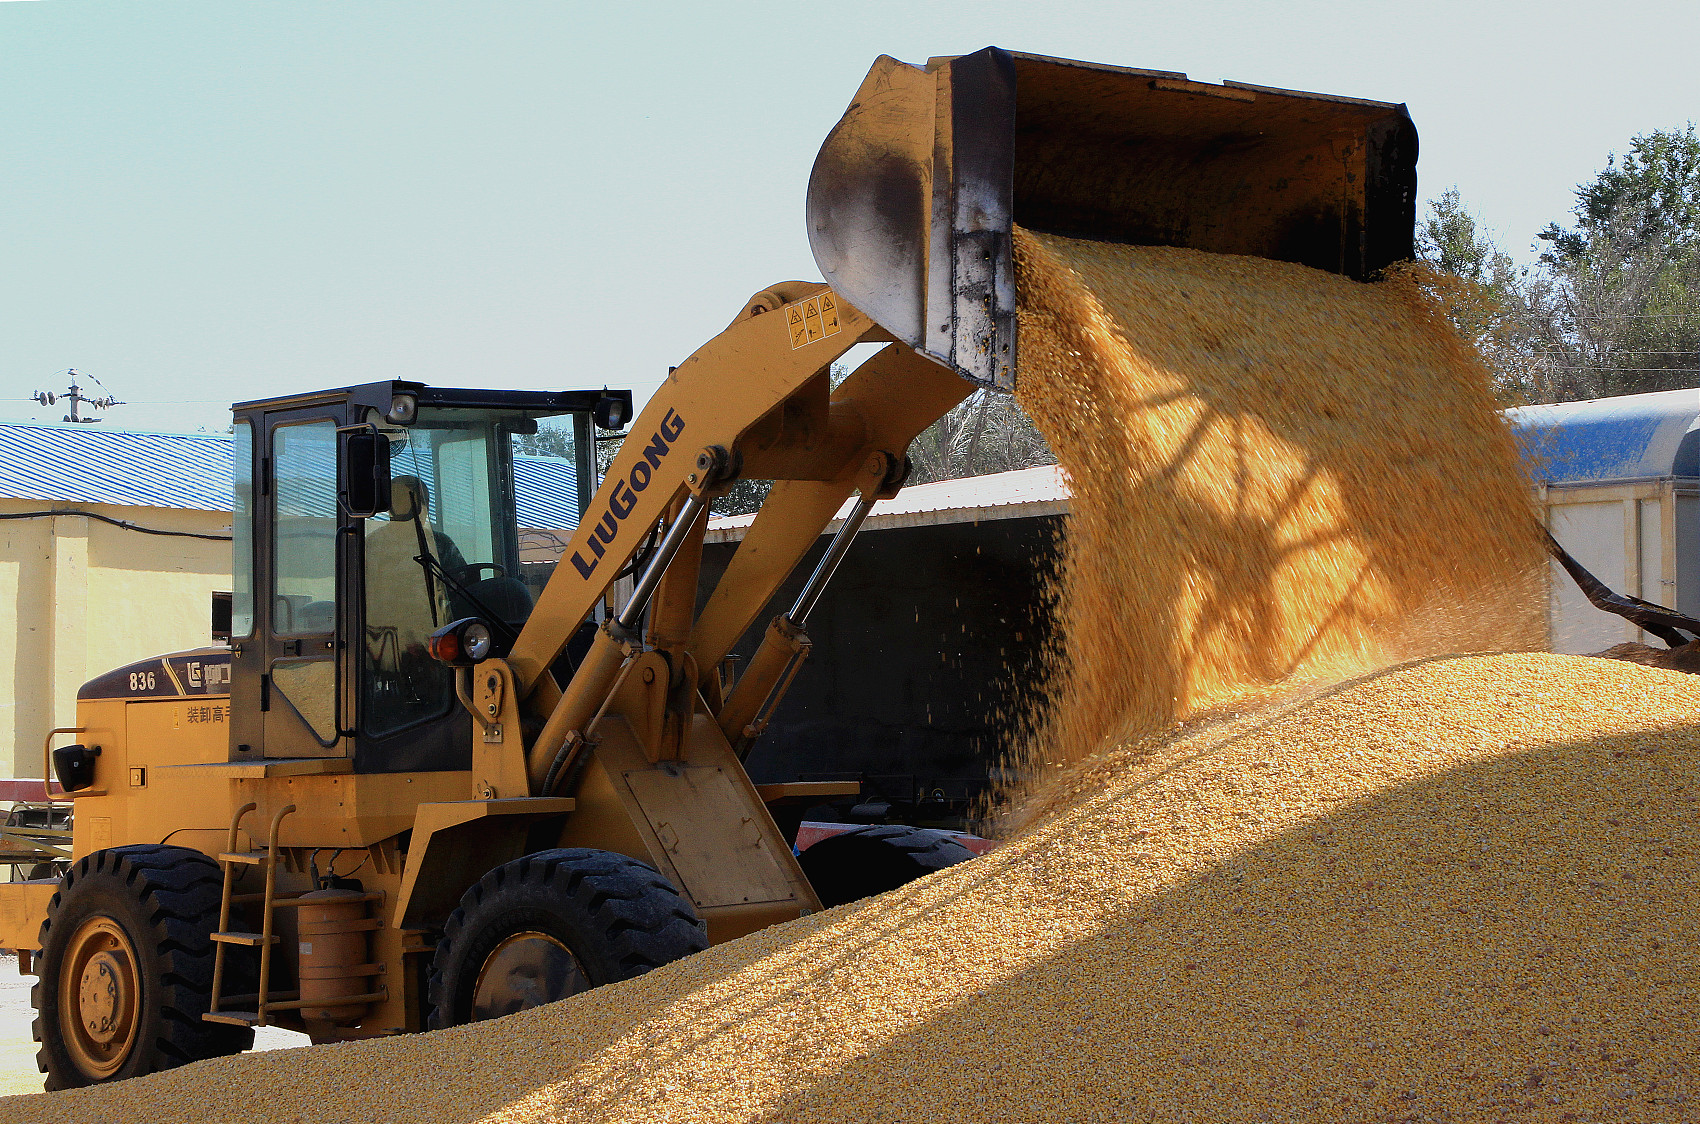 China expects another bumper year in grain output